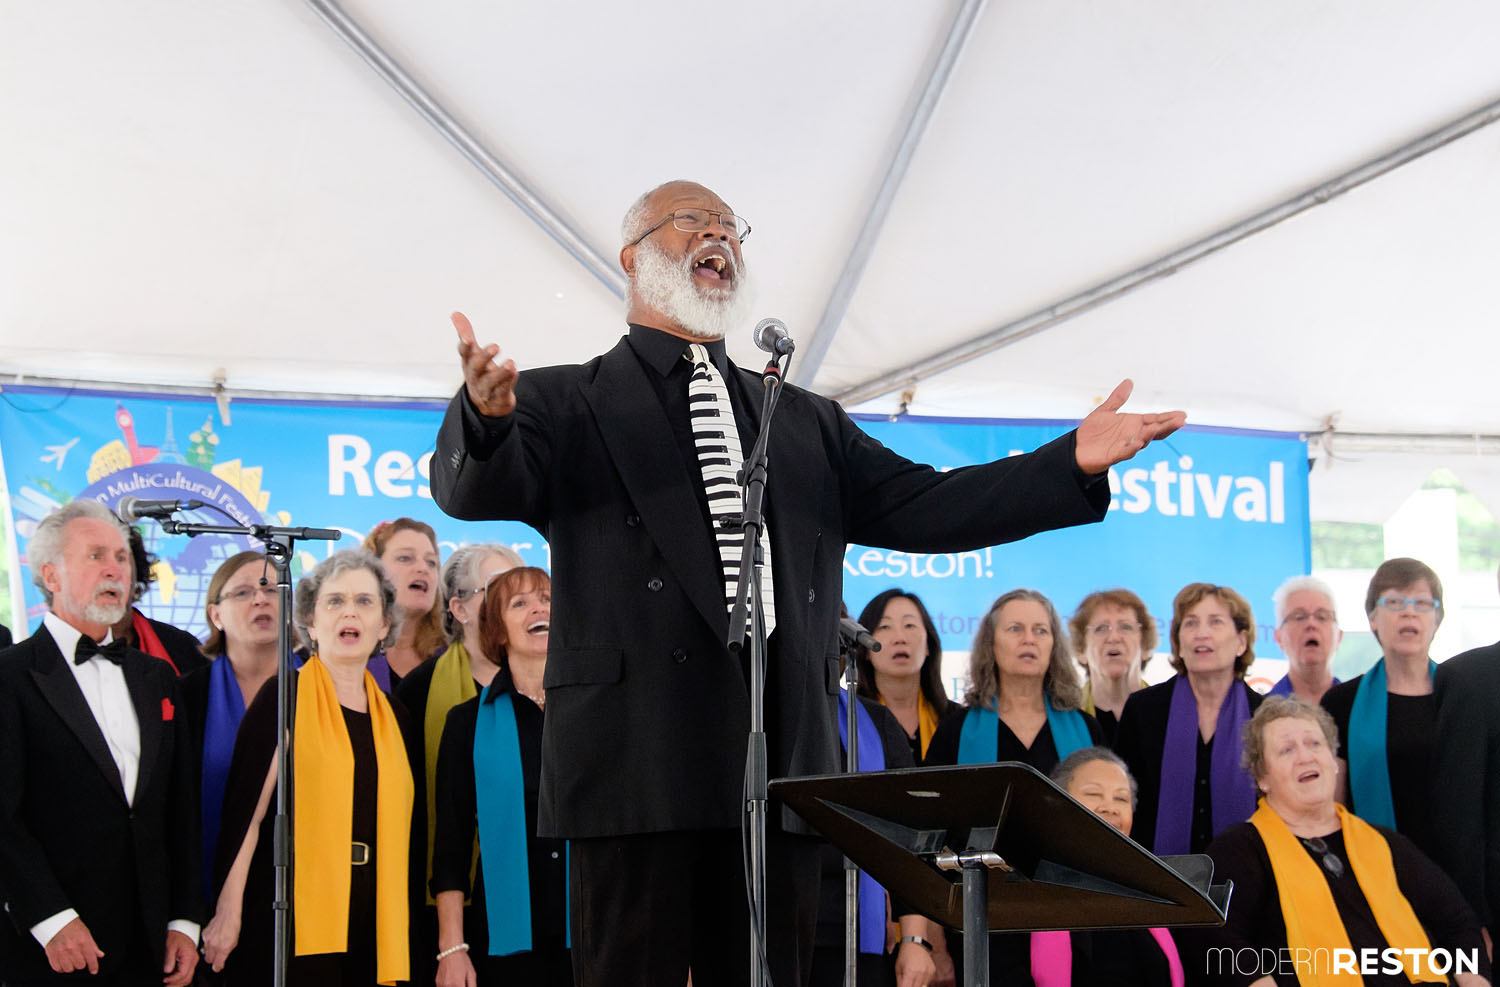 Mosaic Harmony (gospel choir)